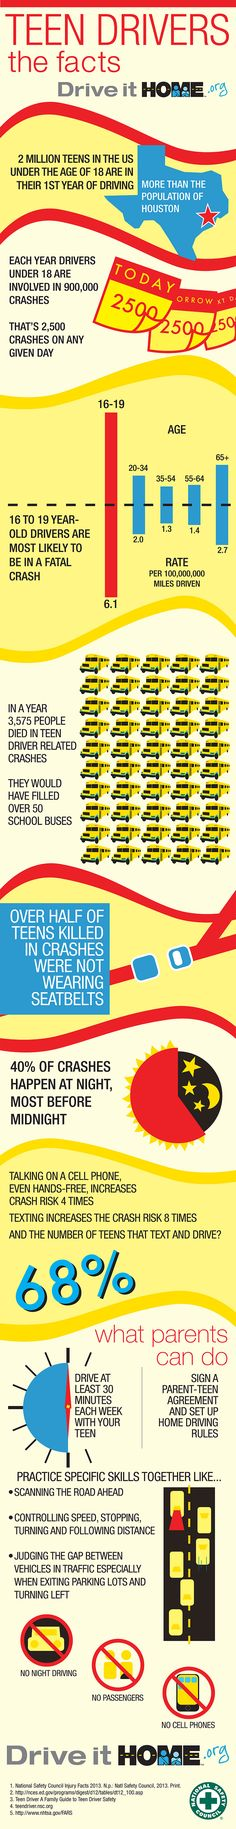 Teen Drivers: The Facts